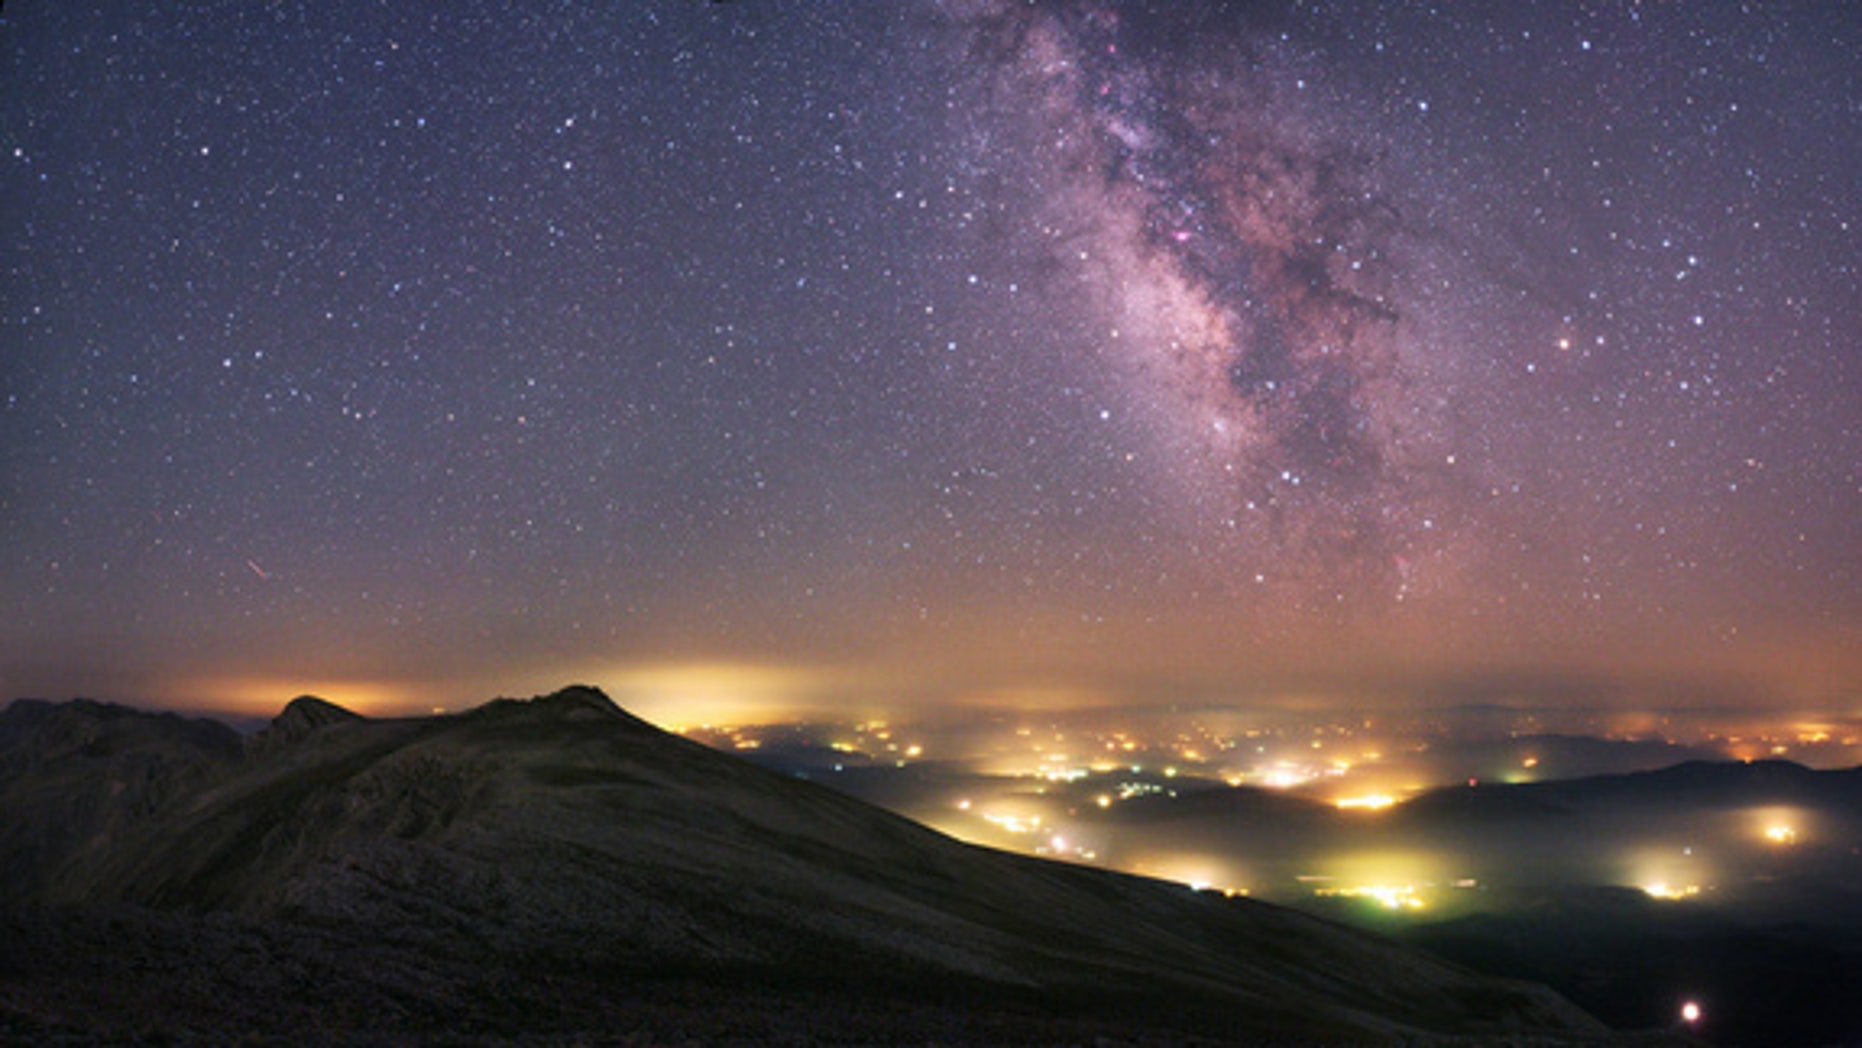 A view from the Uludag National Park in Turkey. The Milky Way stretches across the sky above the manmade pockets of hazy lights from the towns and villages below.